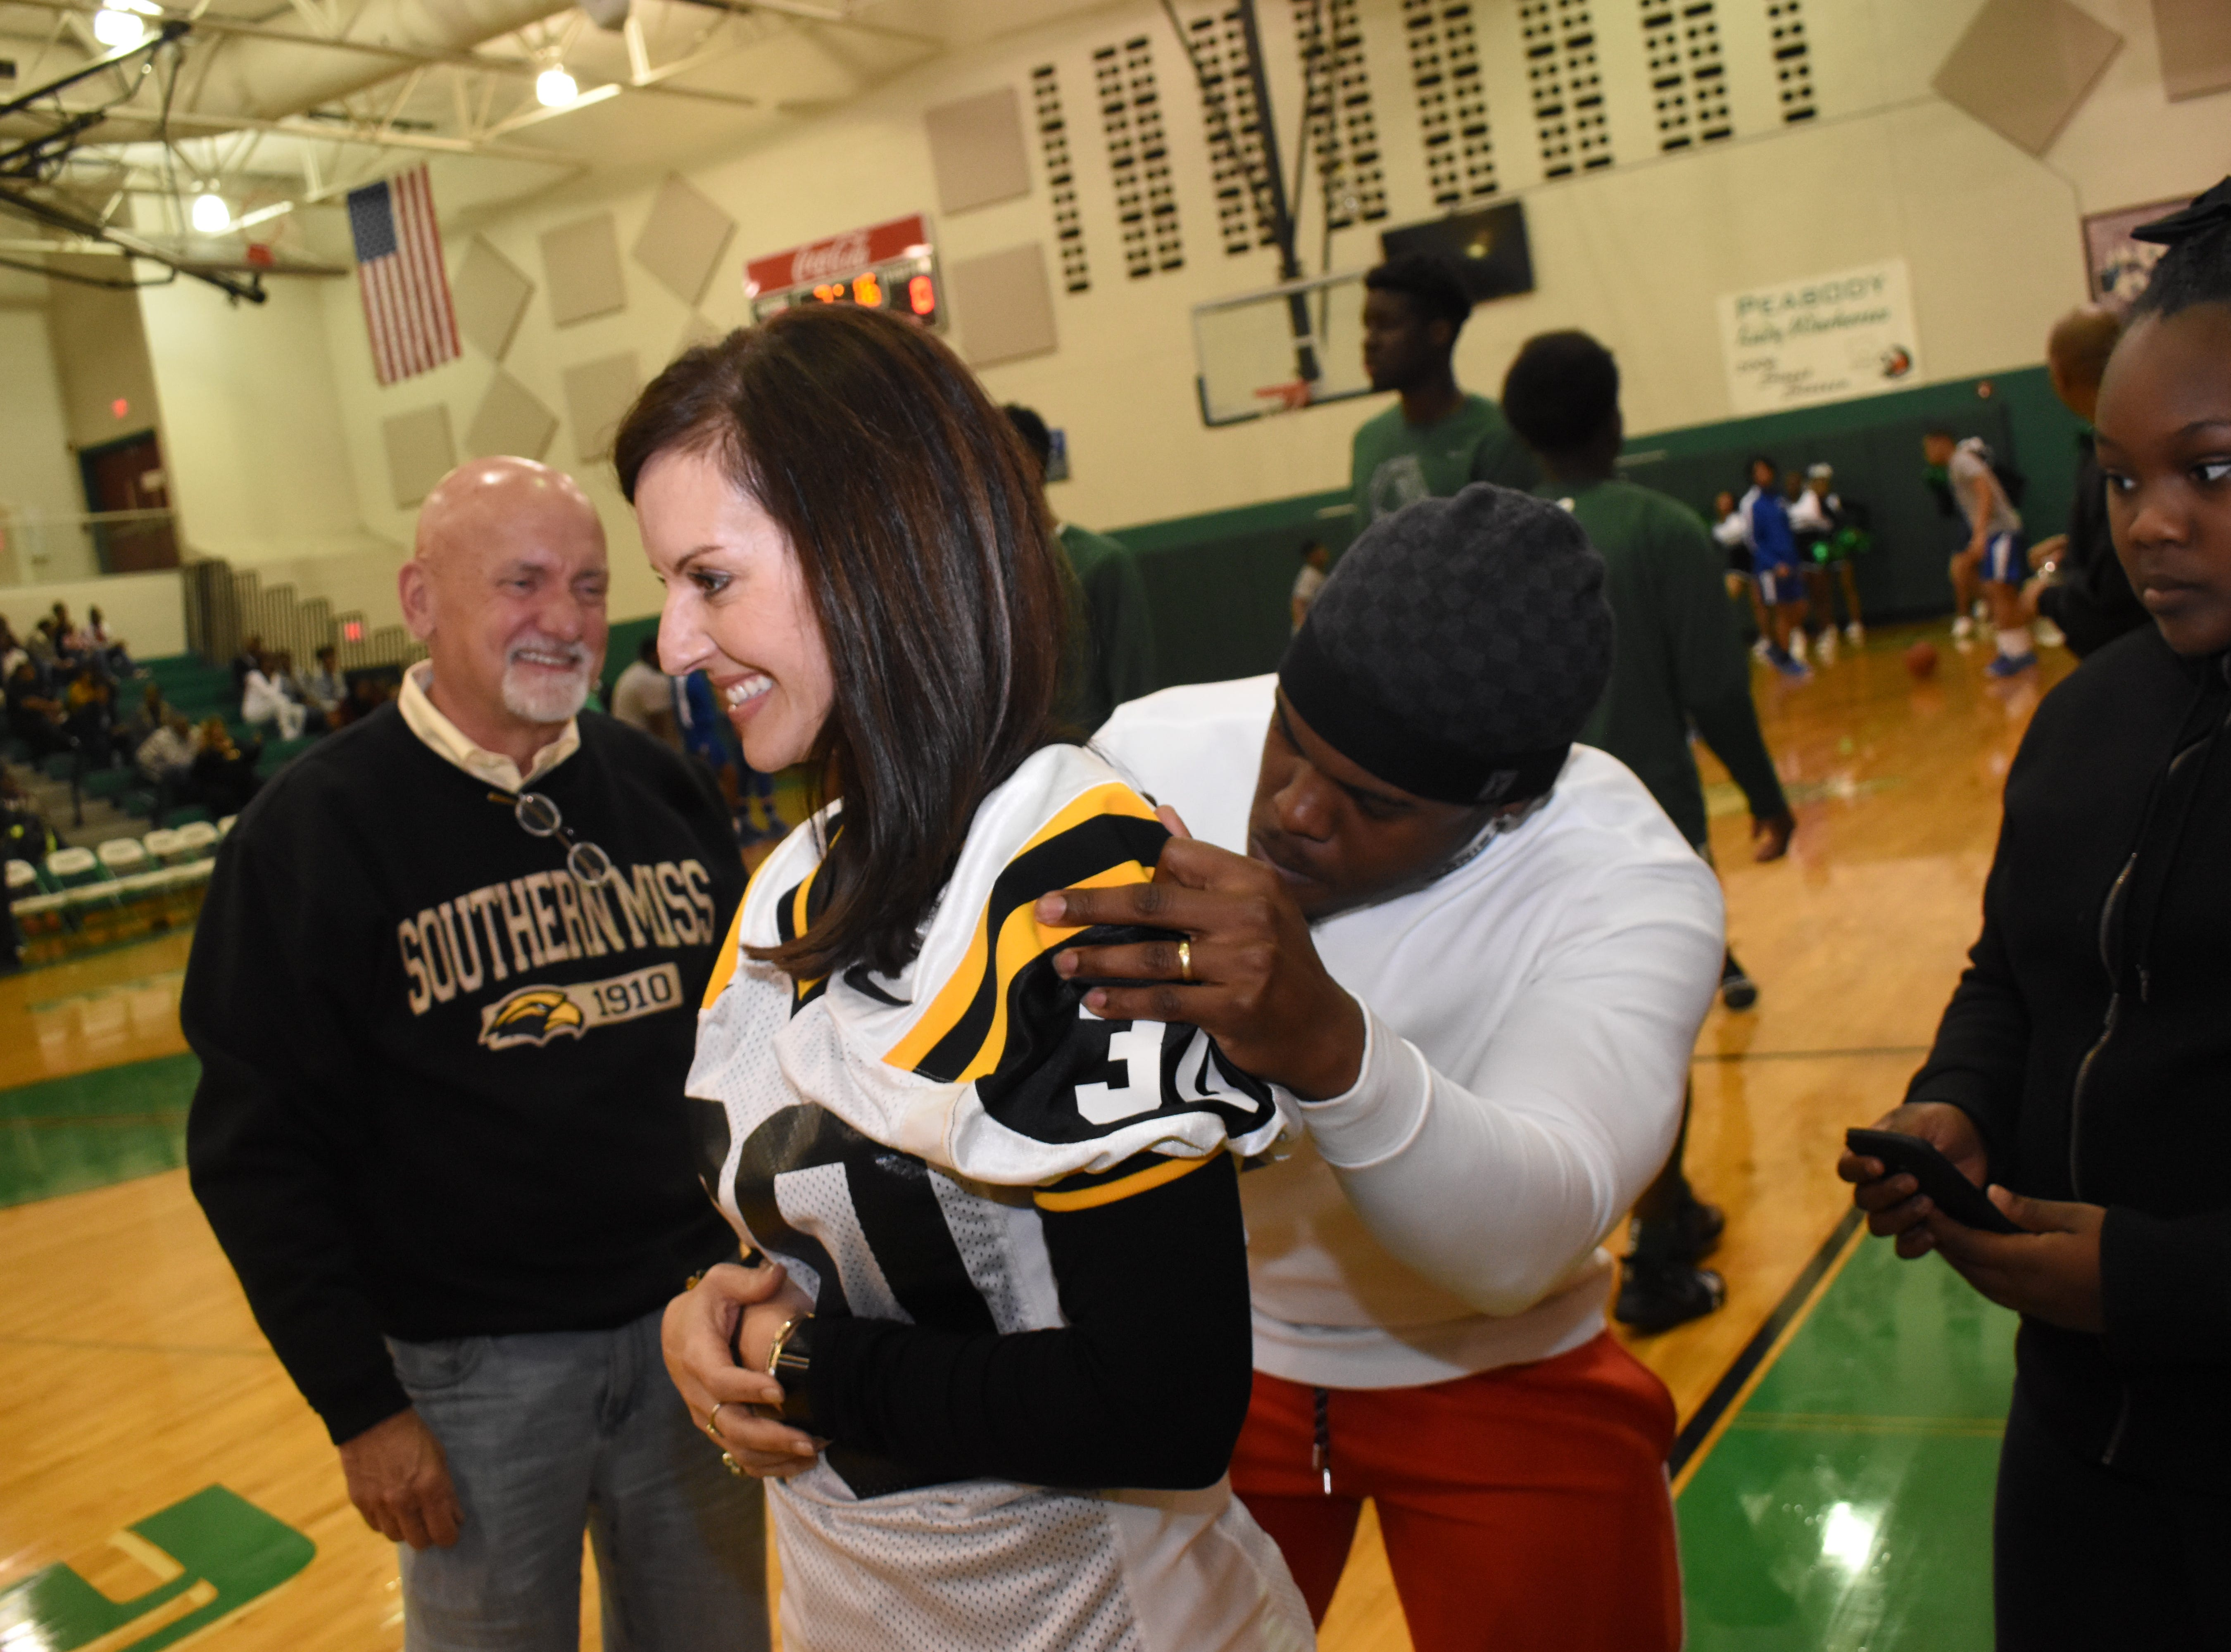 Oakland Raiders running back Jalen Richard (right) signs a University of Southern Mississippi jersey for Tami Blackwell. Her husband Duane Blackwell and Richard are graduates of Southern Miss. Richard graduated from Southern Miss in 2016. The Blackwells were among those attending a ceremony at Peabody Magnet High School where Richard's jersey was retired. Richard graduated from Peabody in 2012. While at Peabody, Richard made the LSWA Class 4A All-State first team as a junior, and the All-Cenla and All-District first teams as a sophomore and a junior. Richard signed a contract with the Raiders in 2016 after being invited to attend a rookie minicamp.